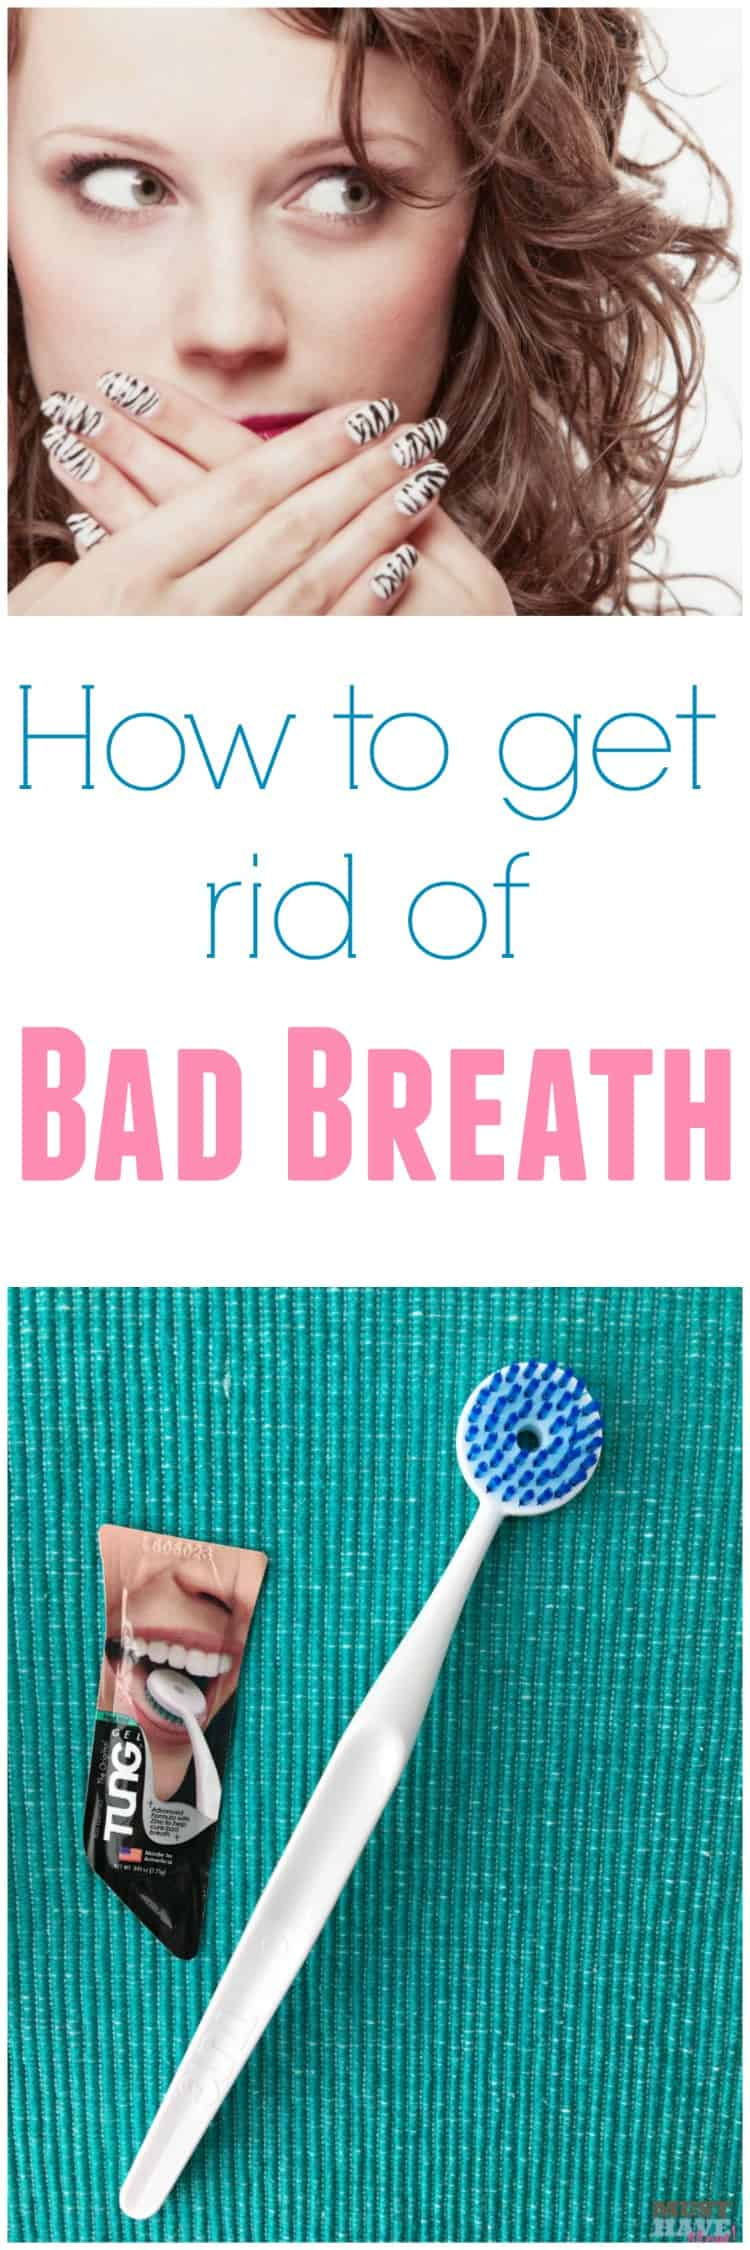 How to get rid of bad breath easily with one simple step! Plus causes of halitosis and cures for bad breath.